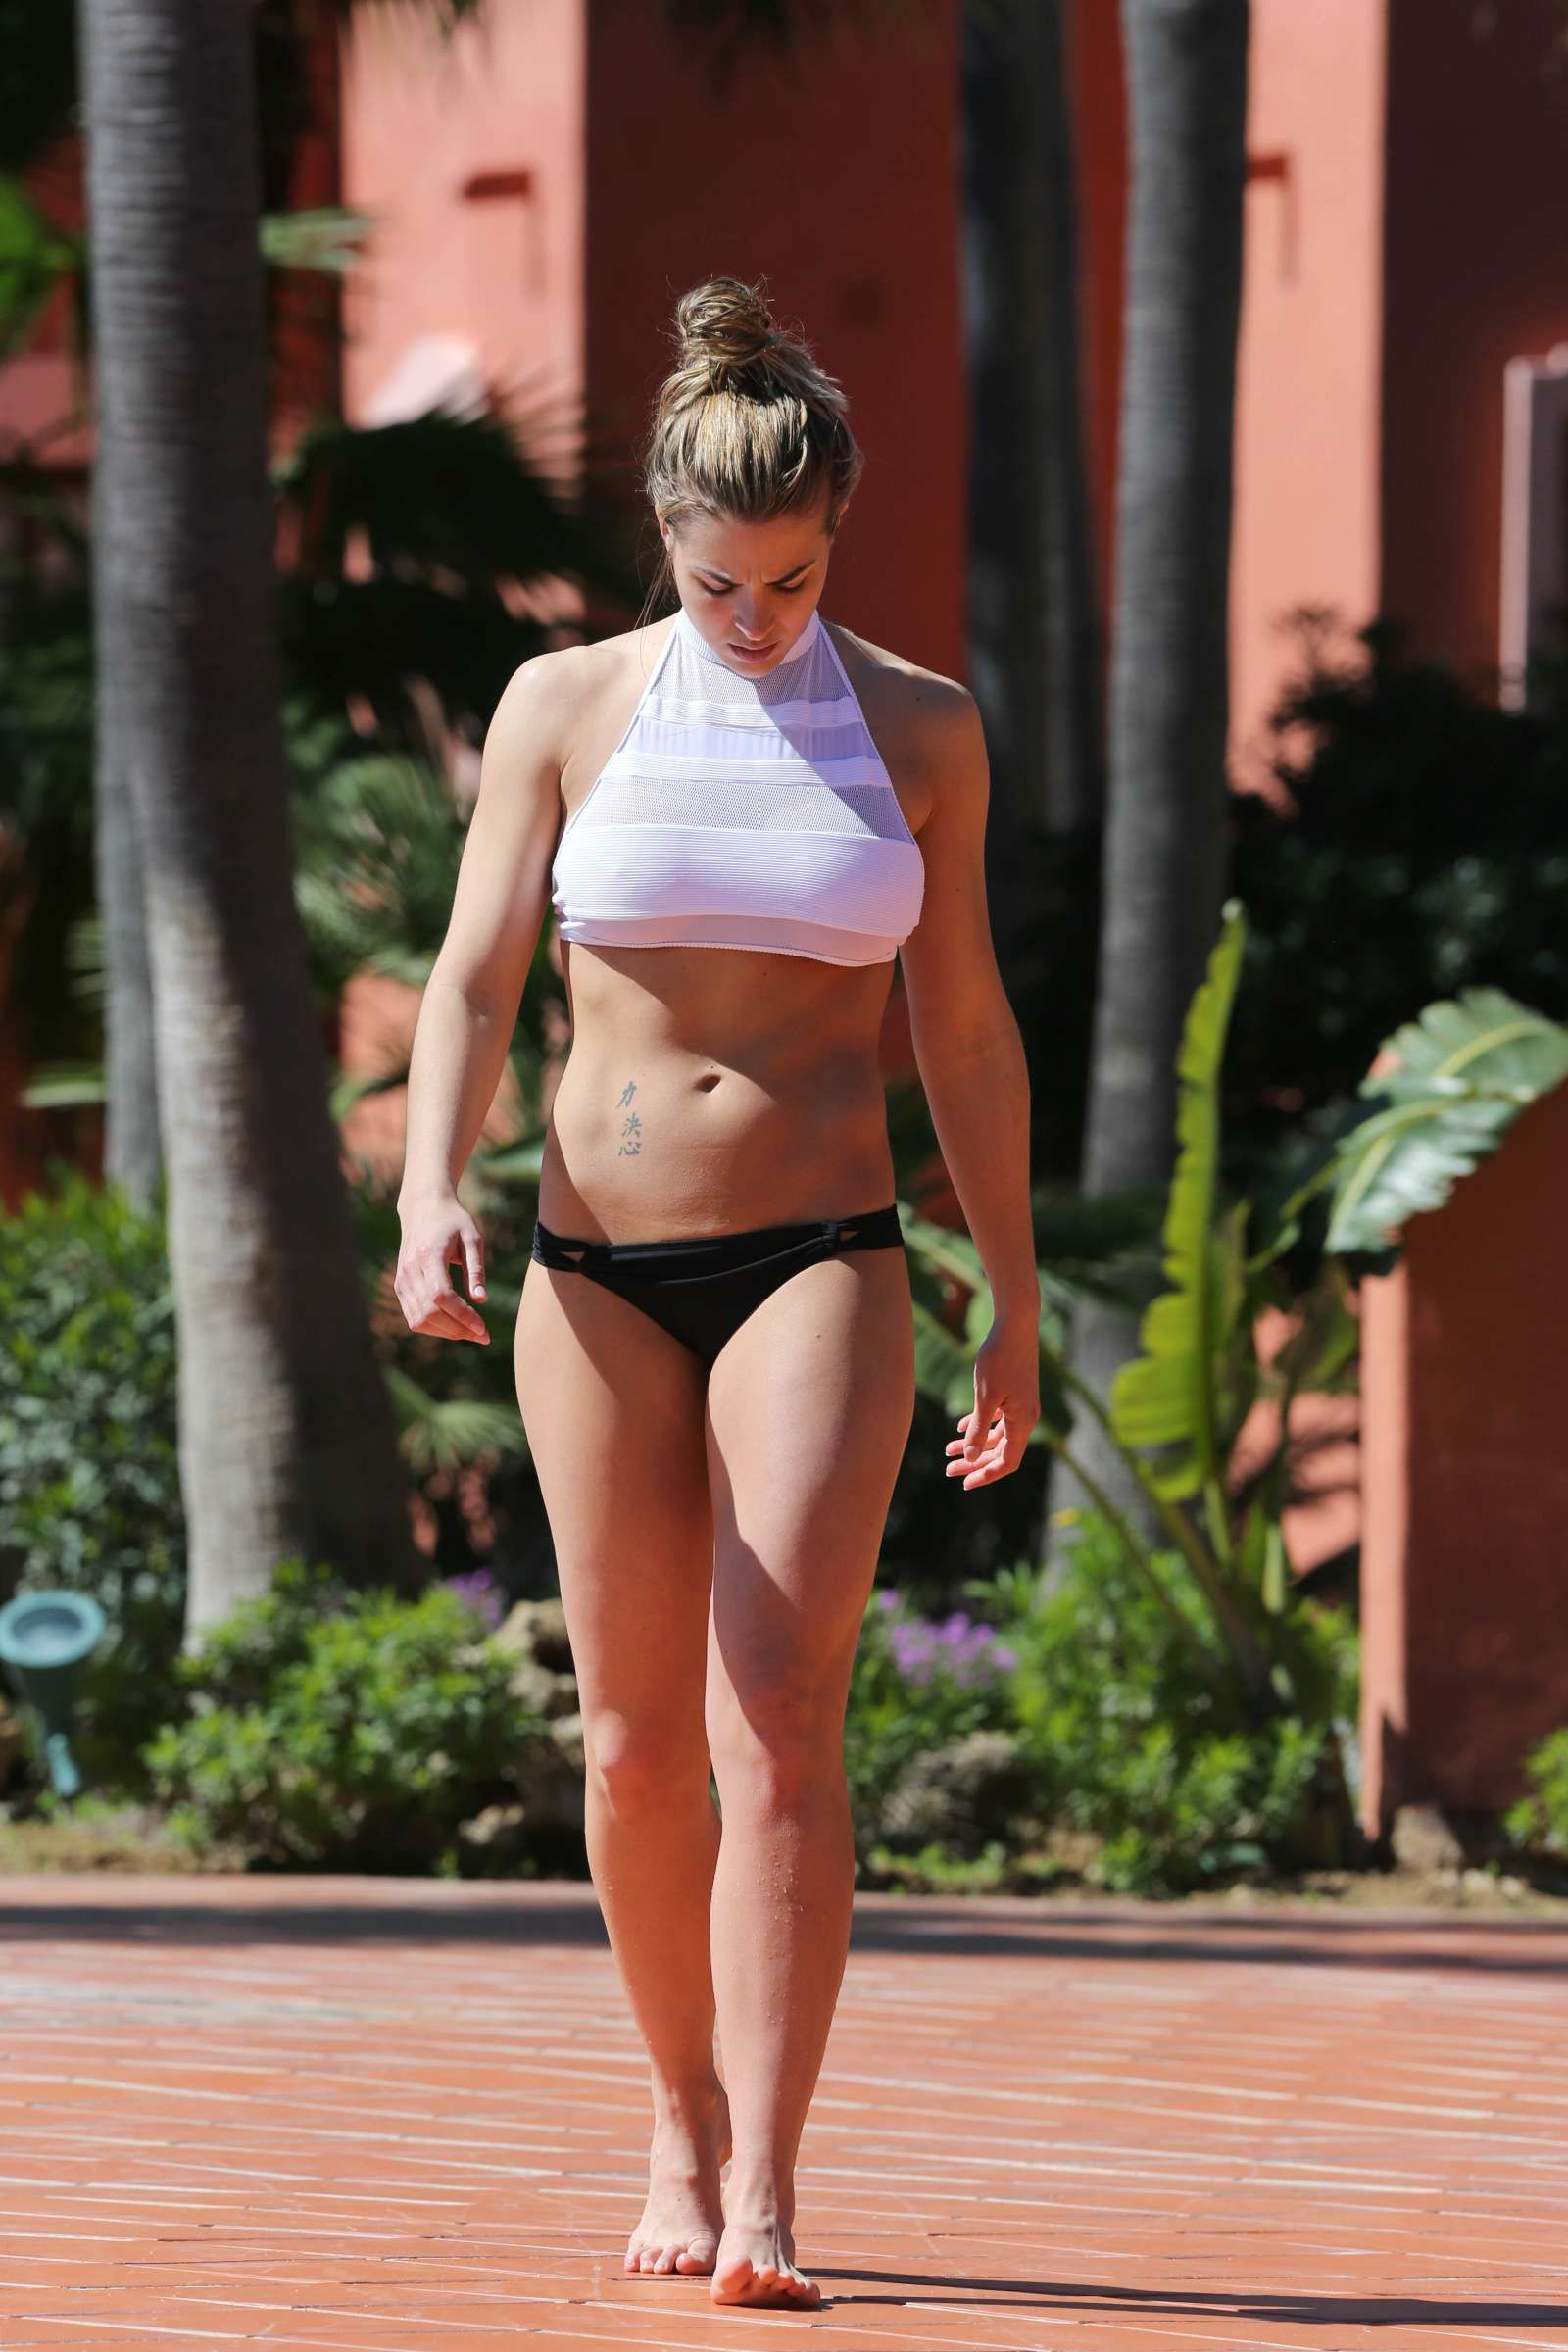 Feet Gemma Atkinson nudes (33 photos), Ass, Paparazzi, Boobs, braless 2015